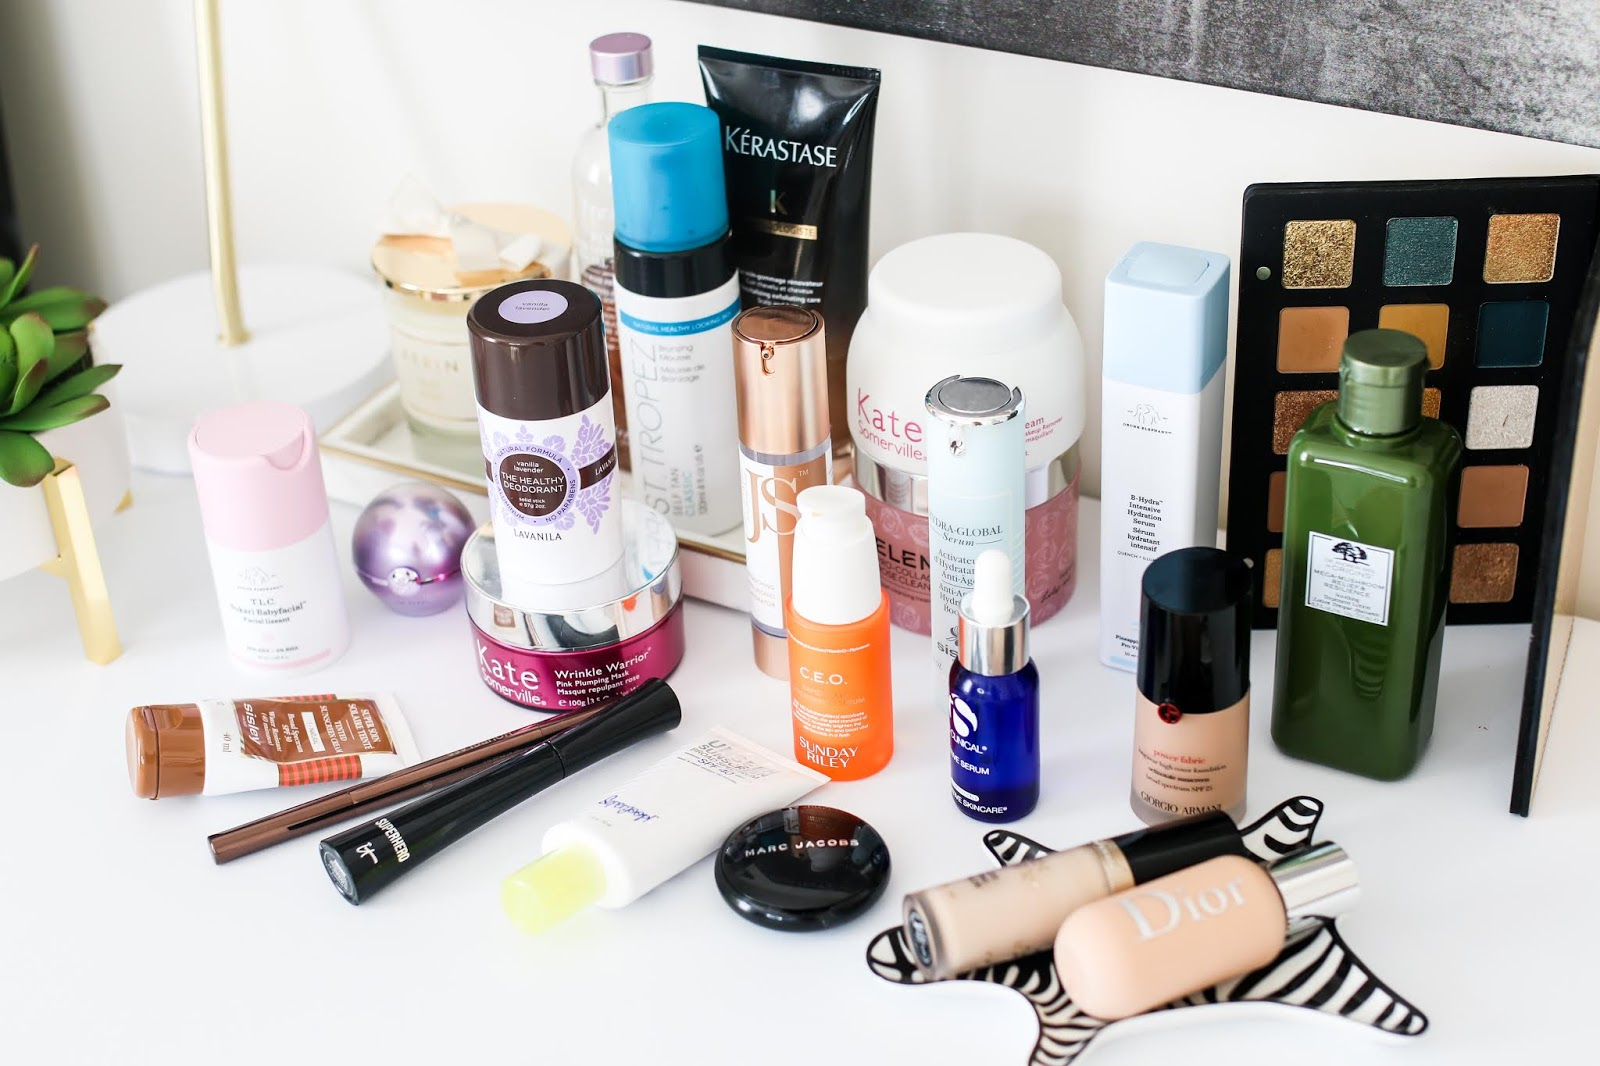 A Little Bit etc : Best of Beauty 2018: All My Favorite Makeup and